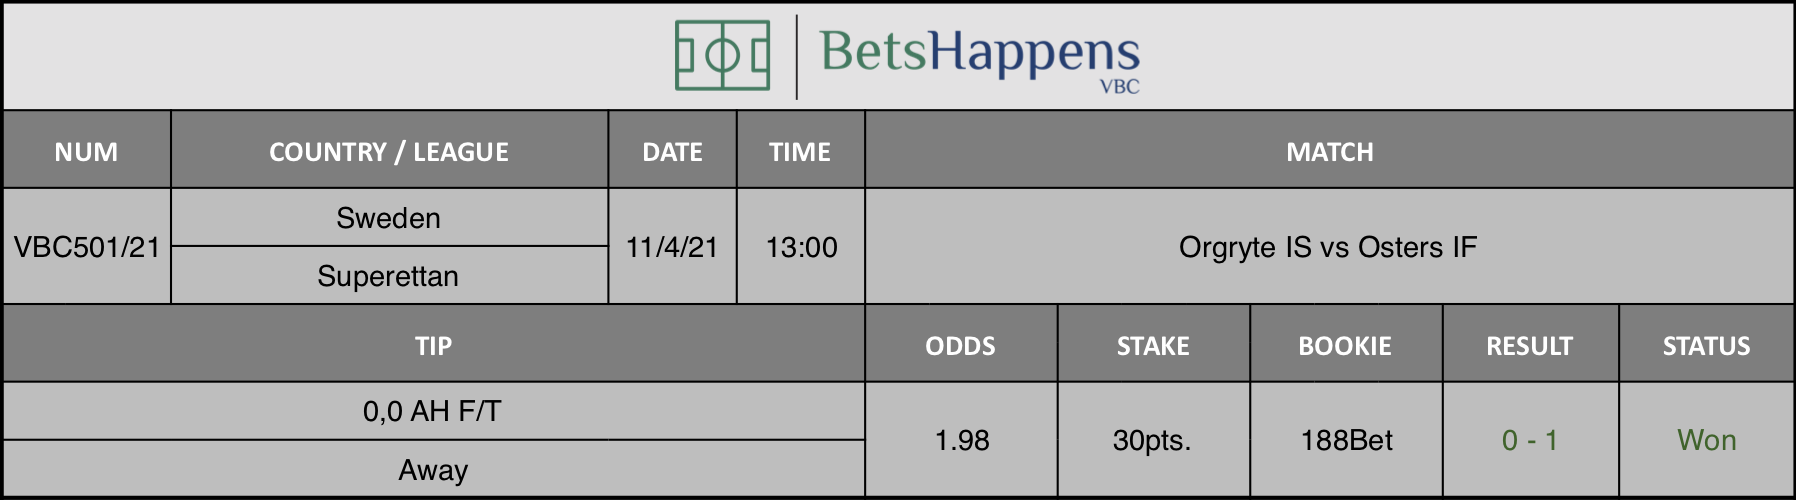 Results of our tip for the Orgryte IS vs Osters IF match where 0,0 AH F/T  Away is recommended.